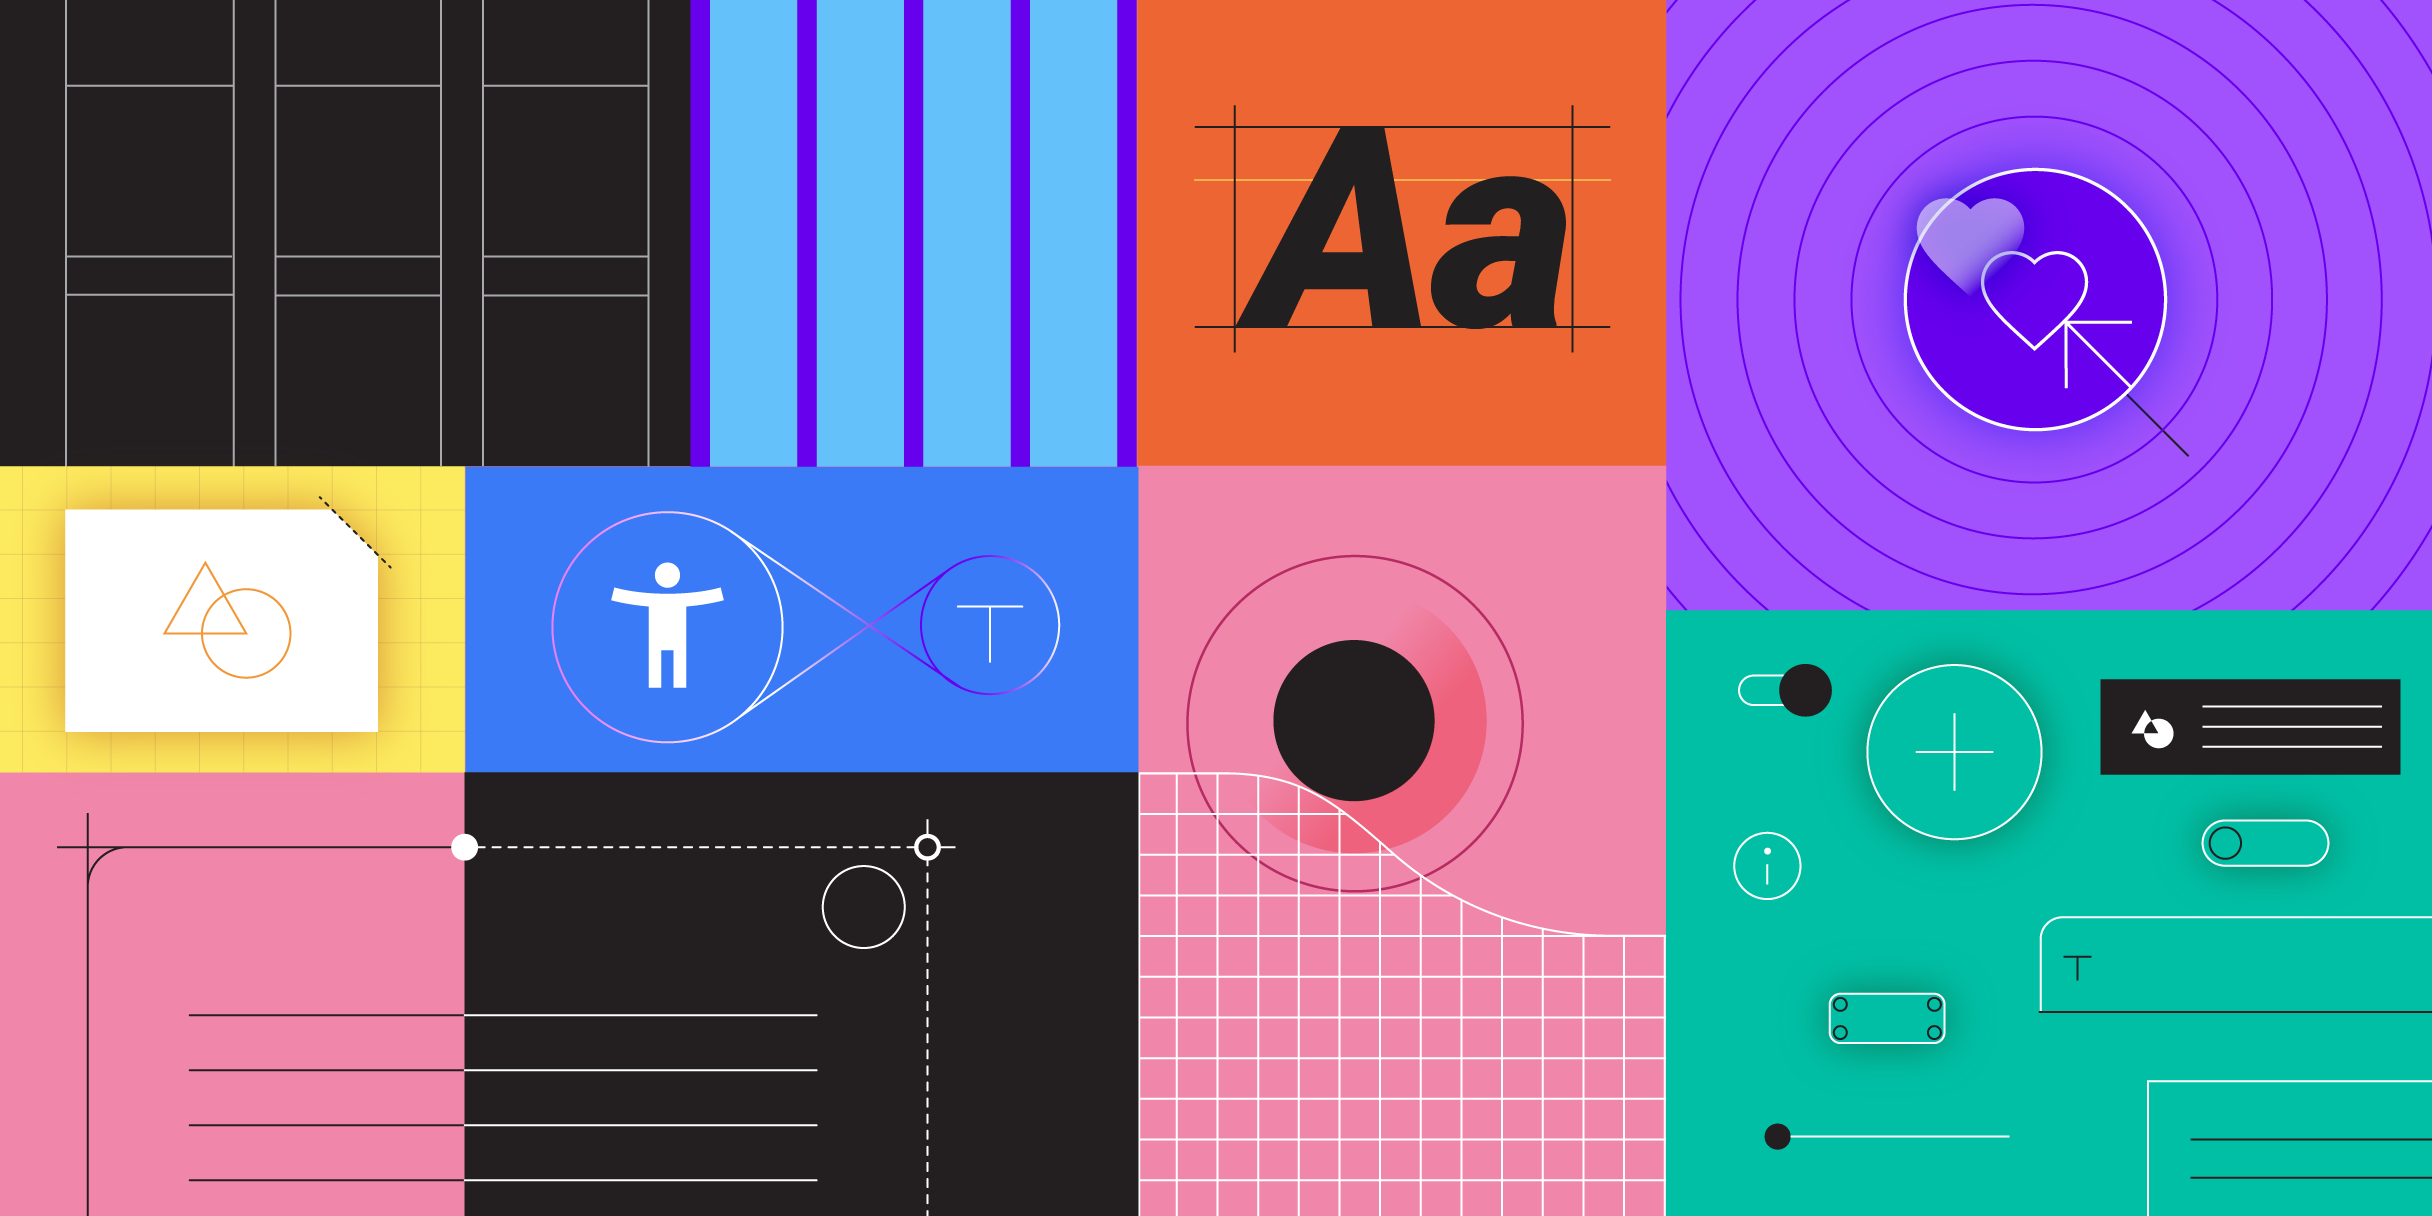 Image: sample moodboard of Google's Material Design system.